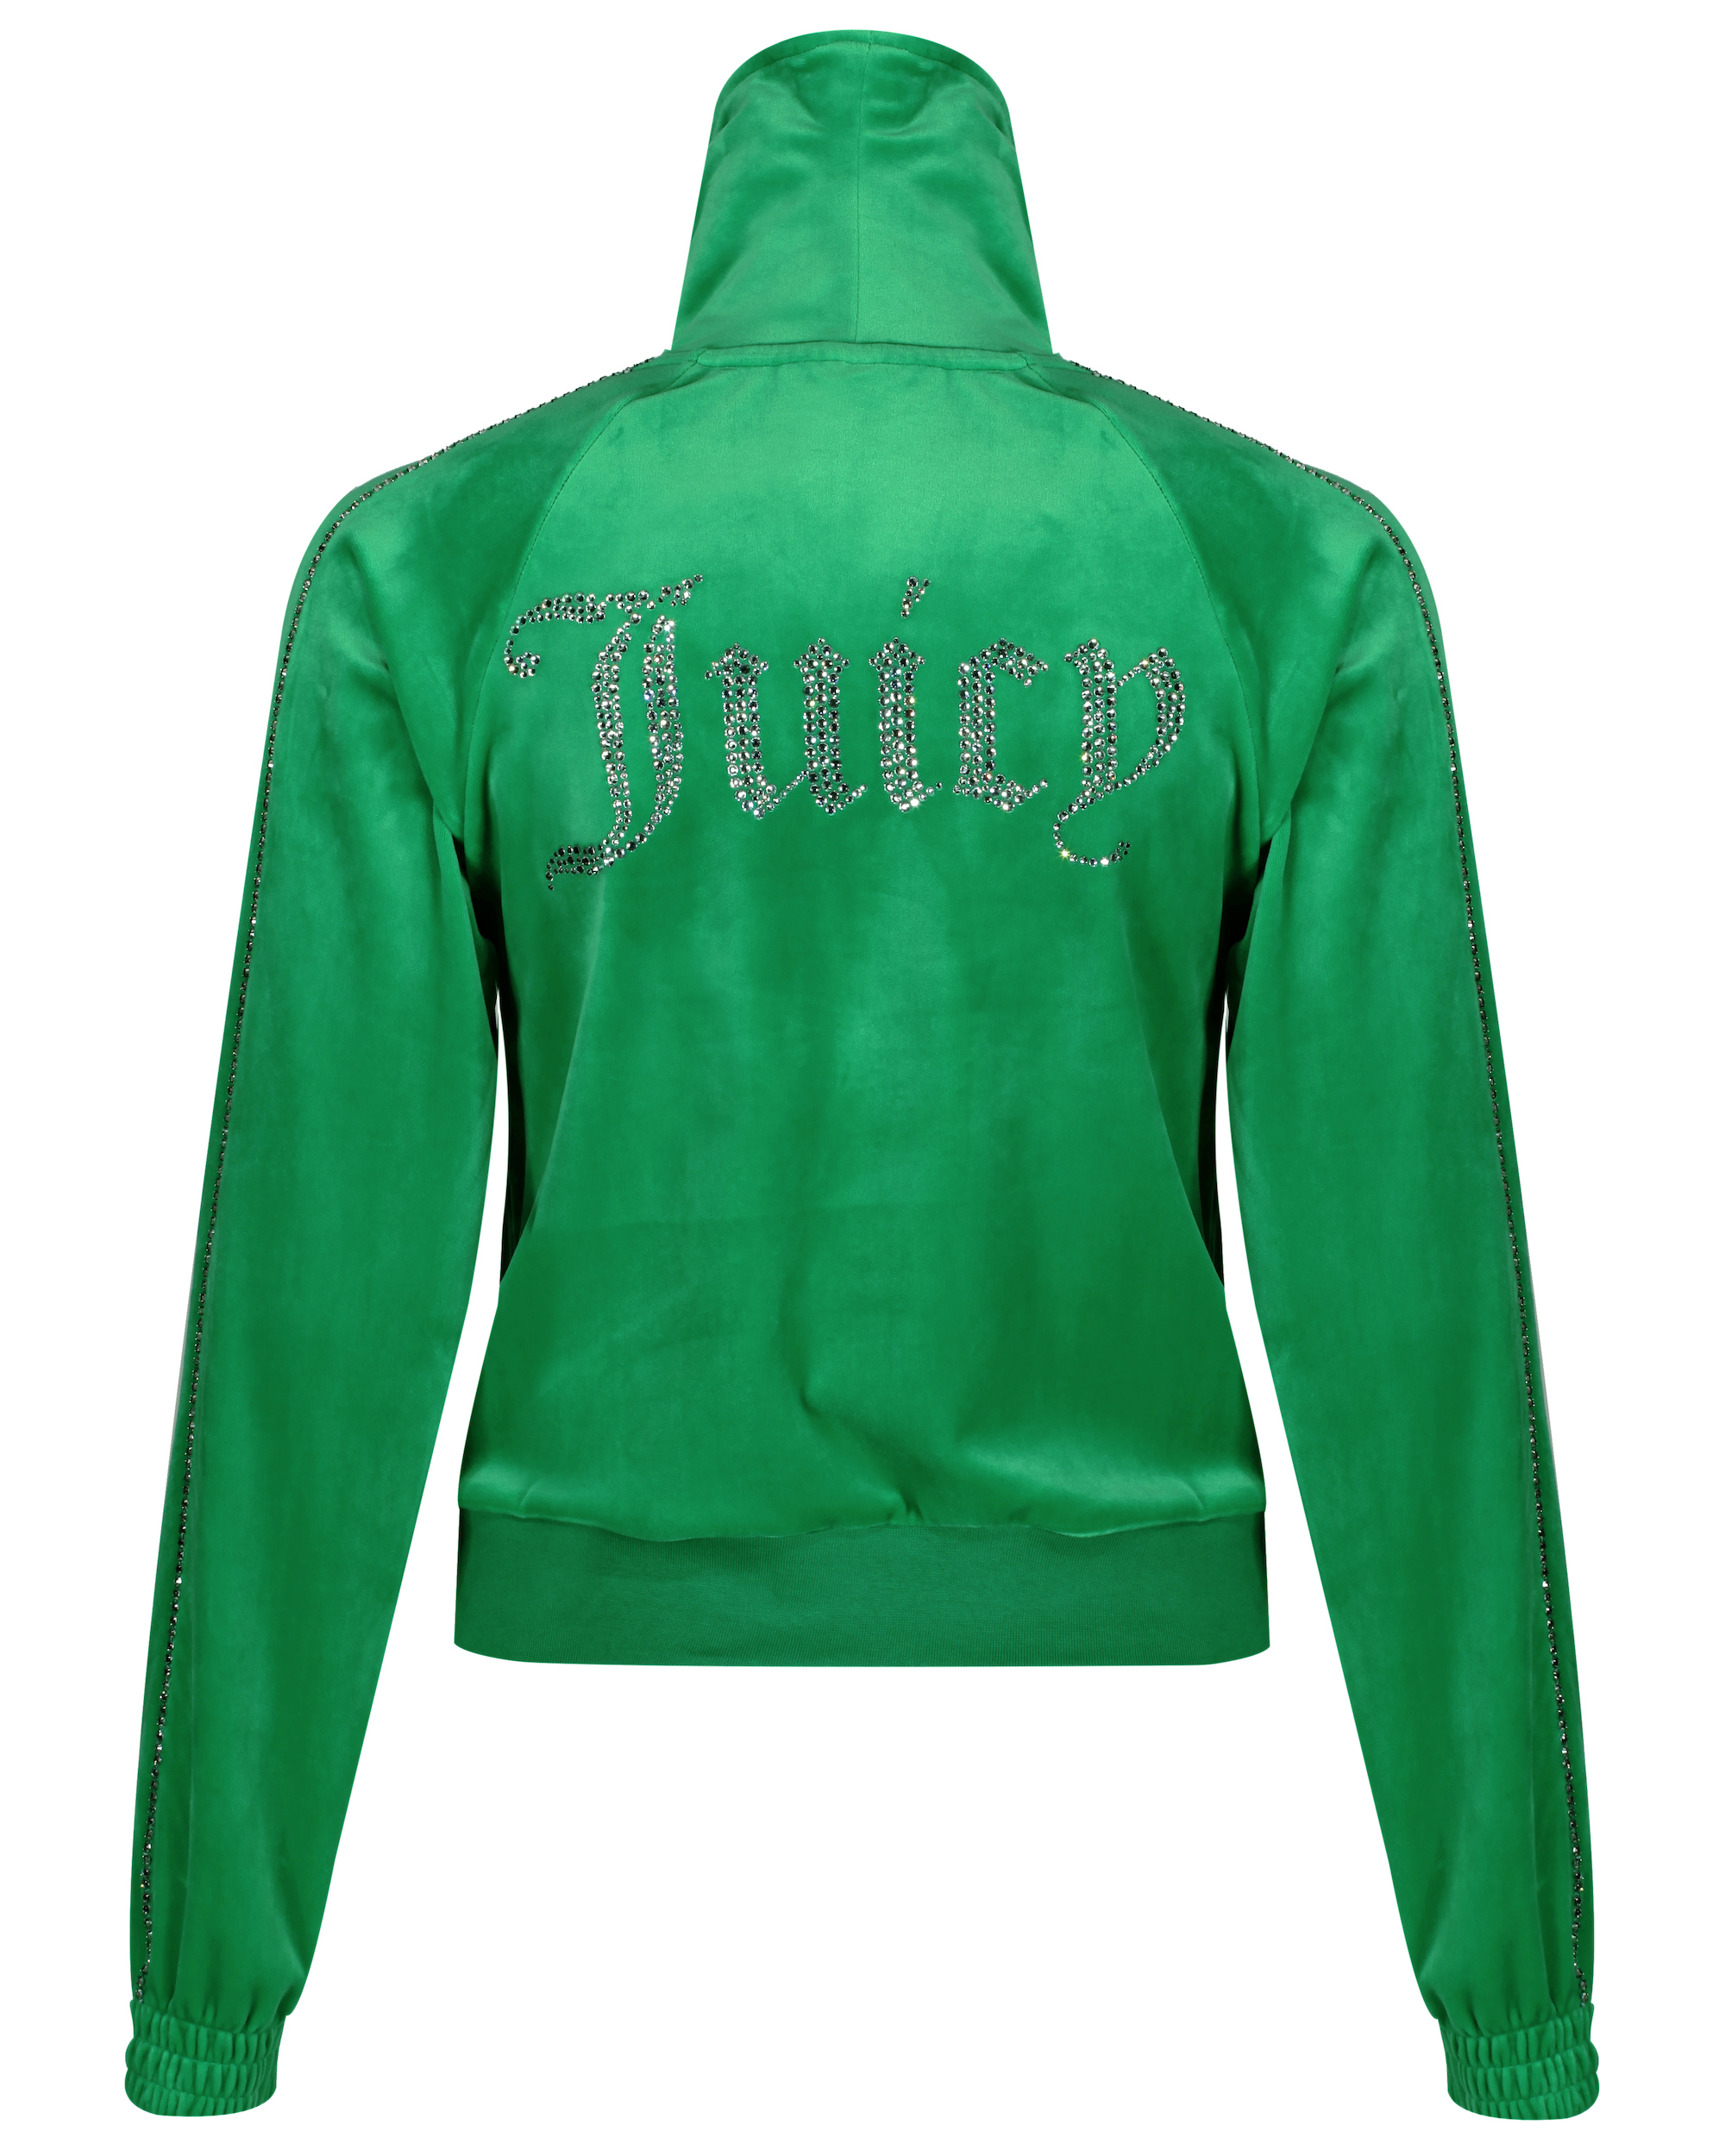 TAMMY-GREEN- Juicy couture ss20 collection